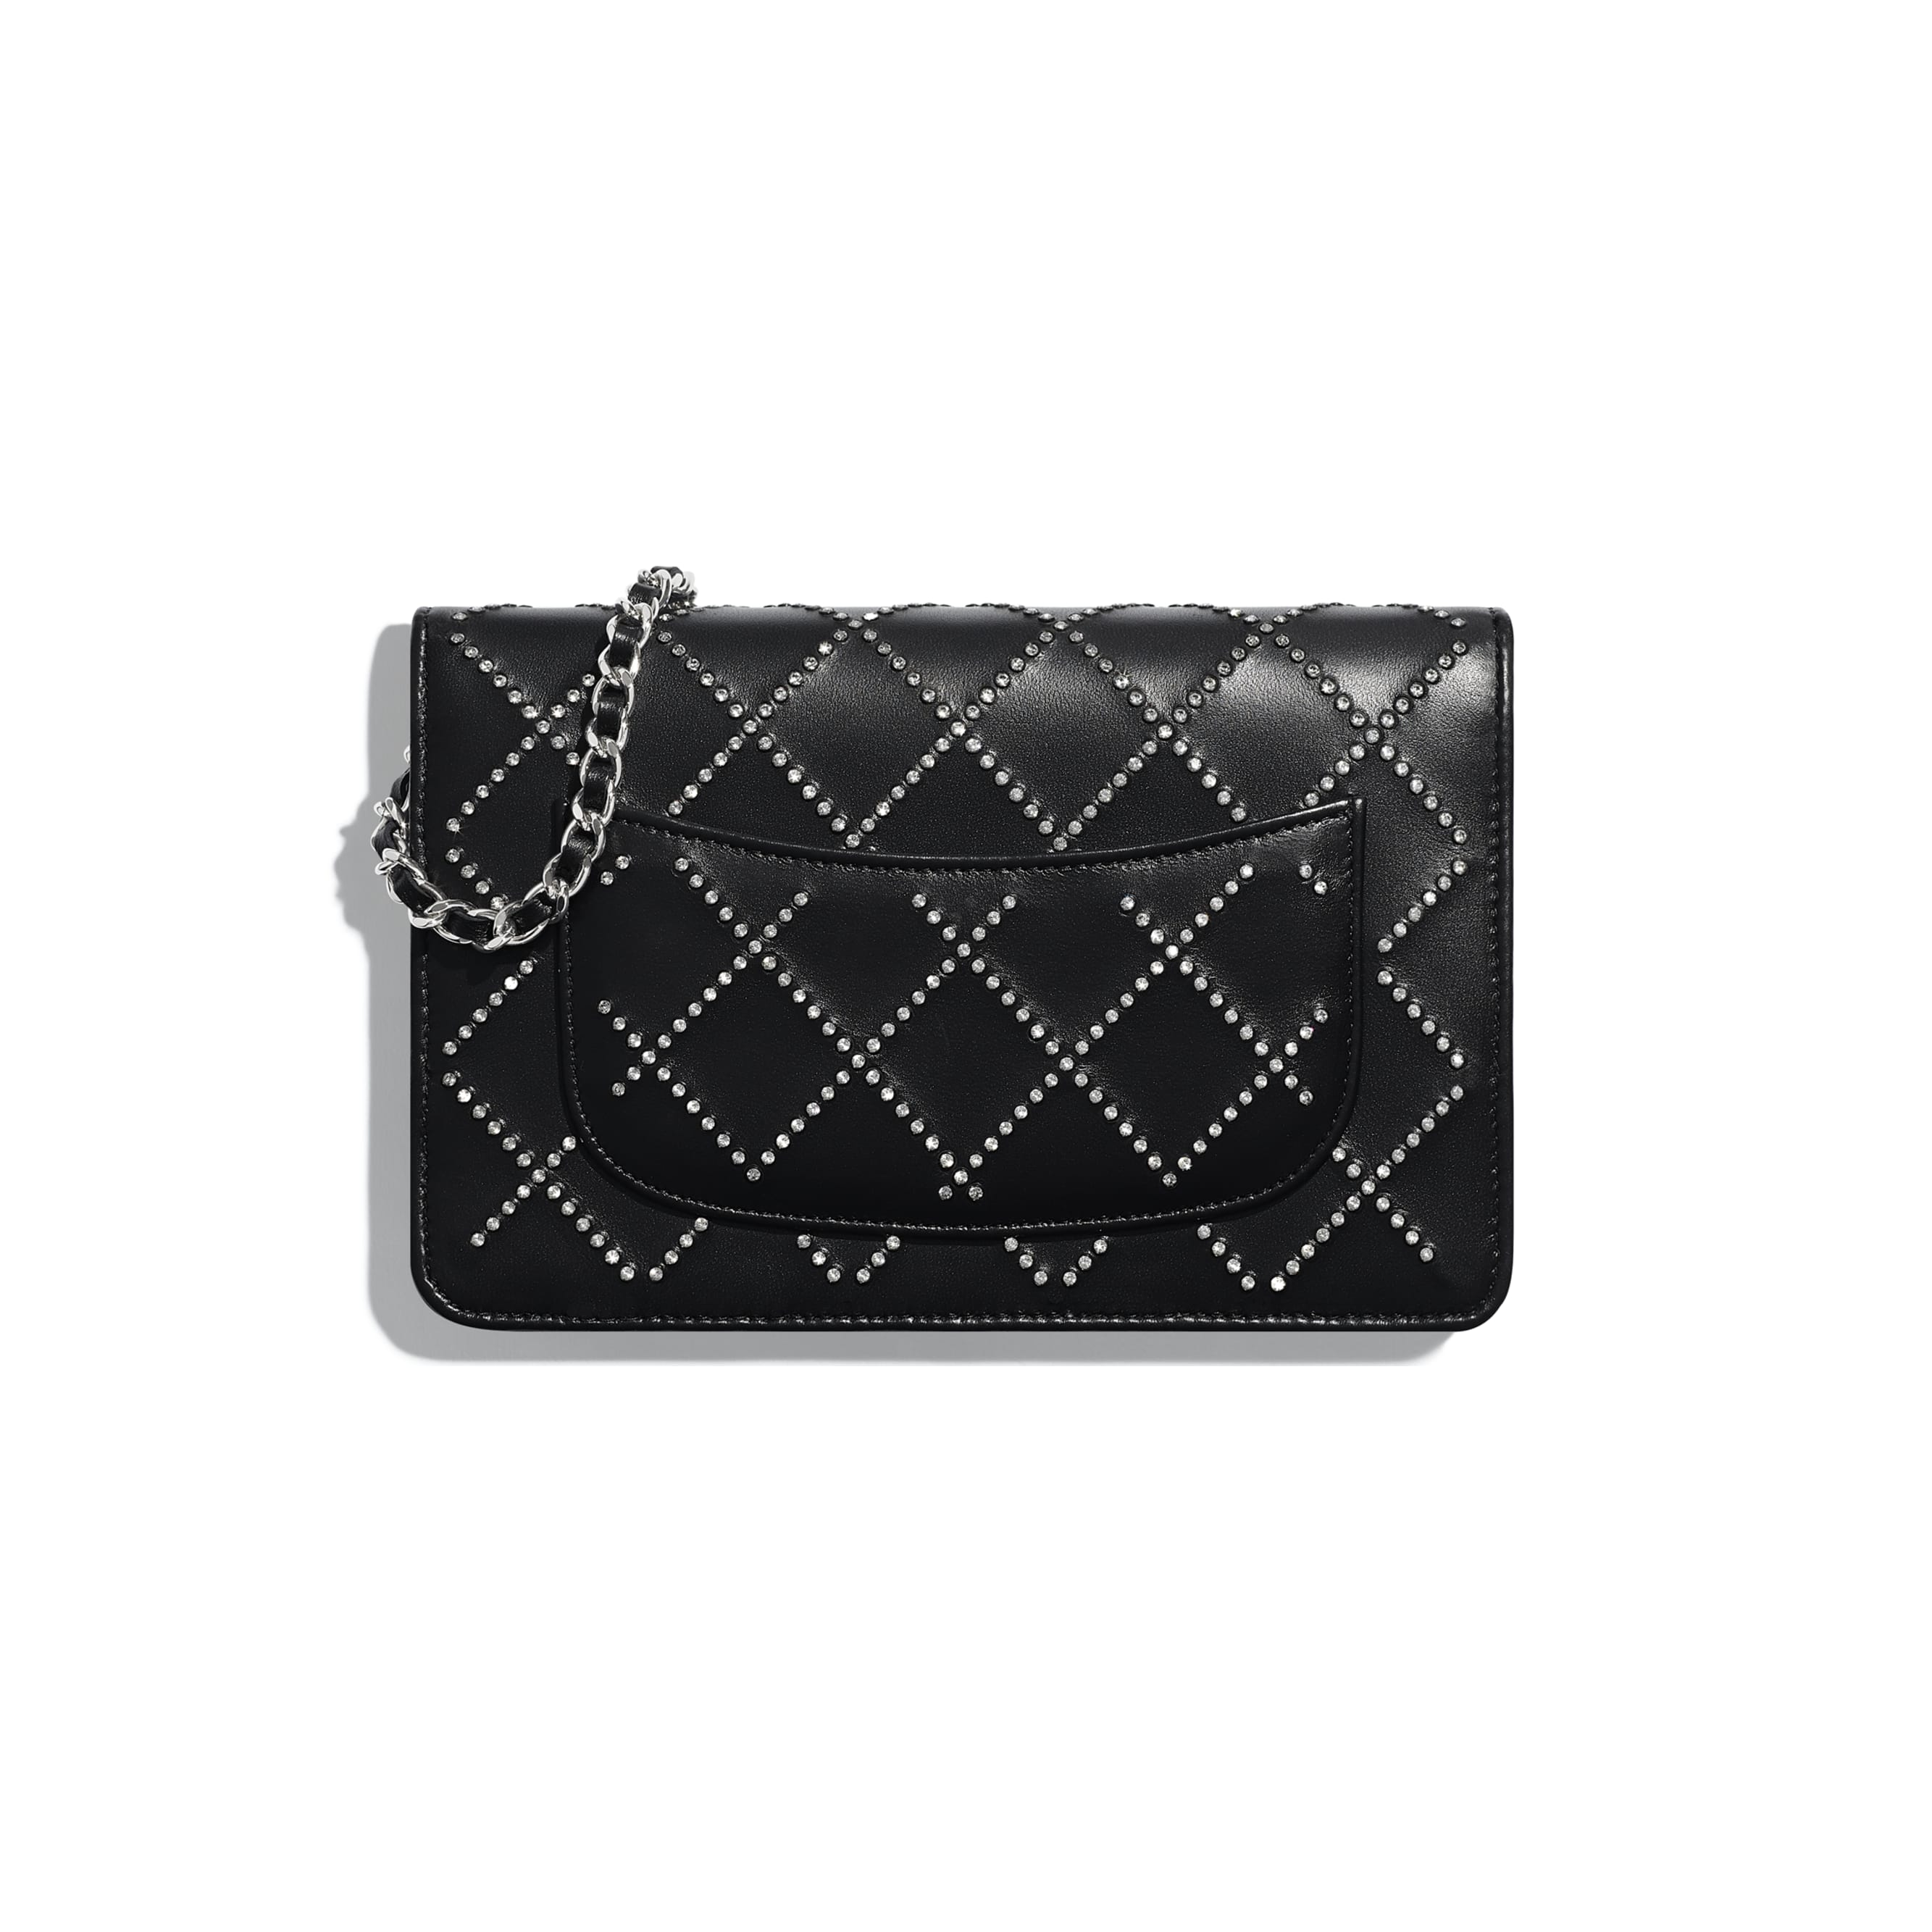 Wallet On Chain - Black - Iridescent Lambskin, Strass & Silver-Tone Metal - Alternative view - see standard sized version